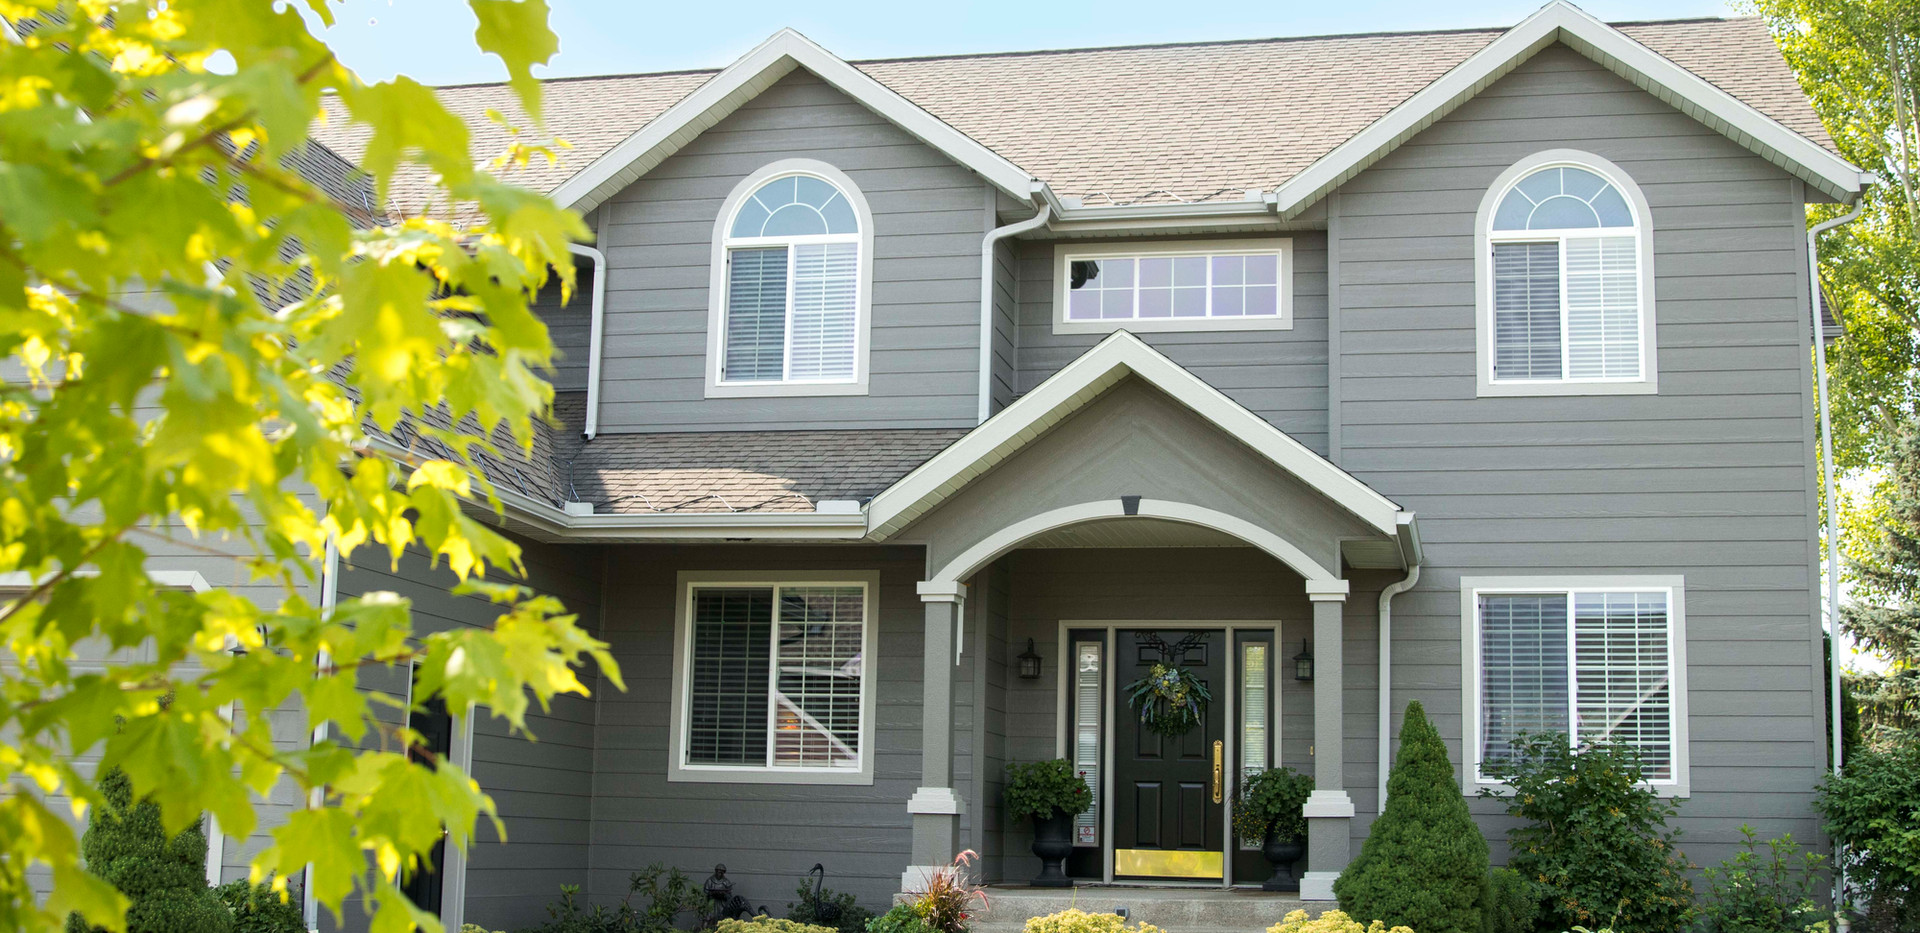 Exterior Painting in Kalispell, MT